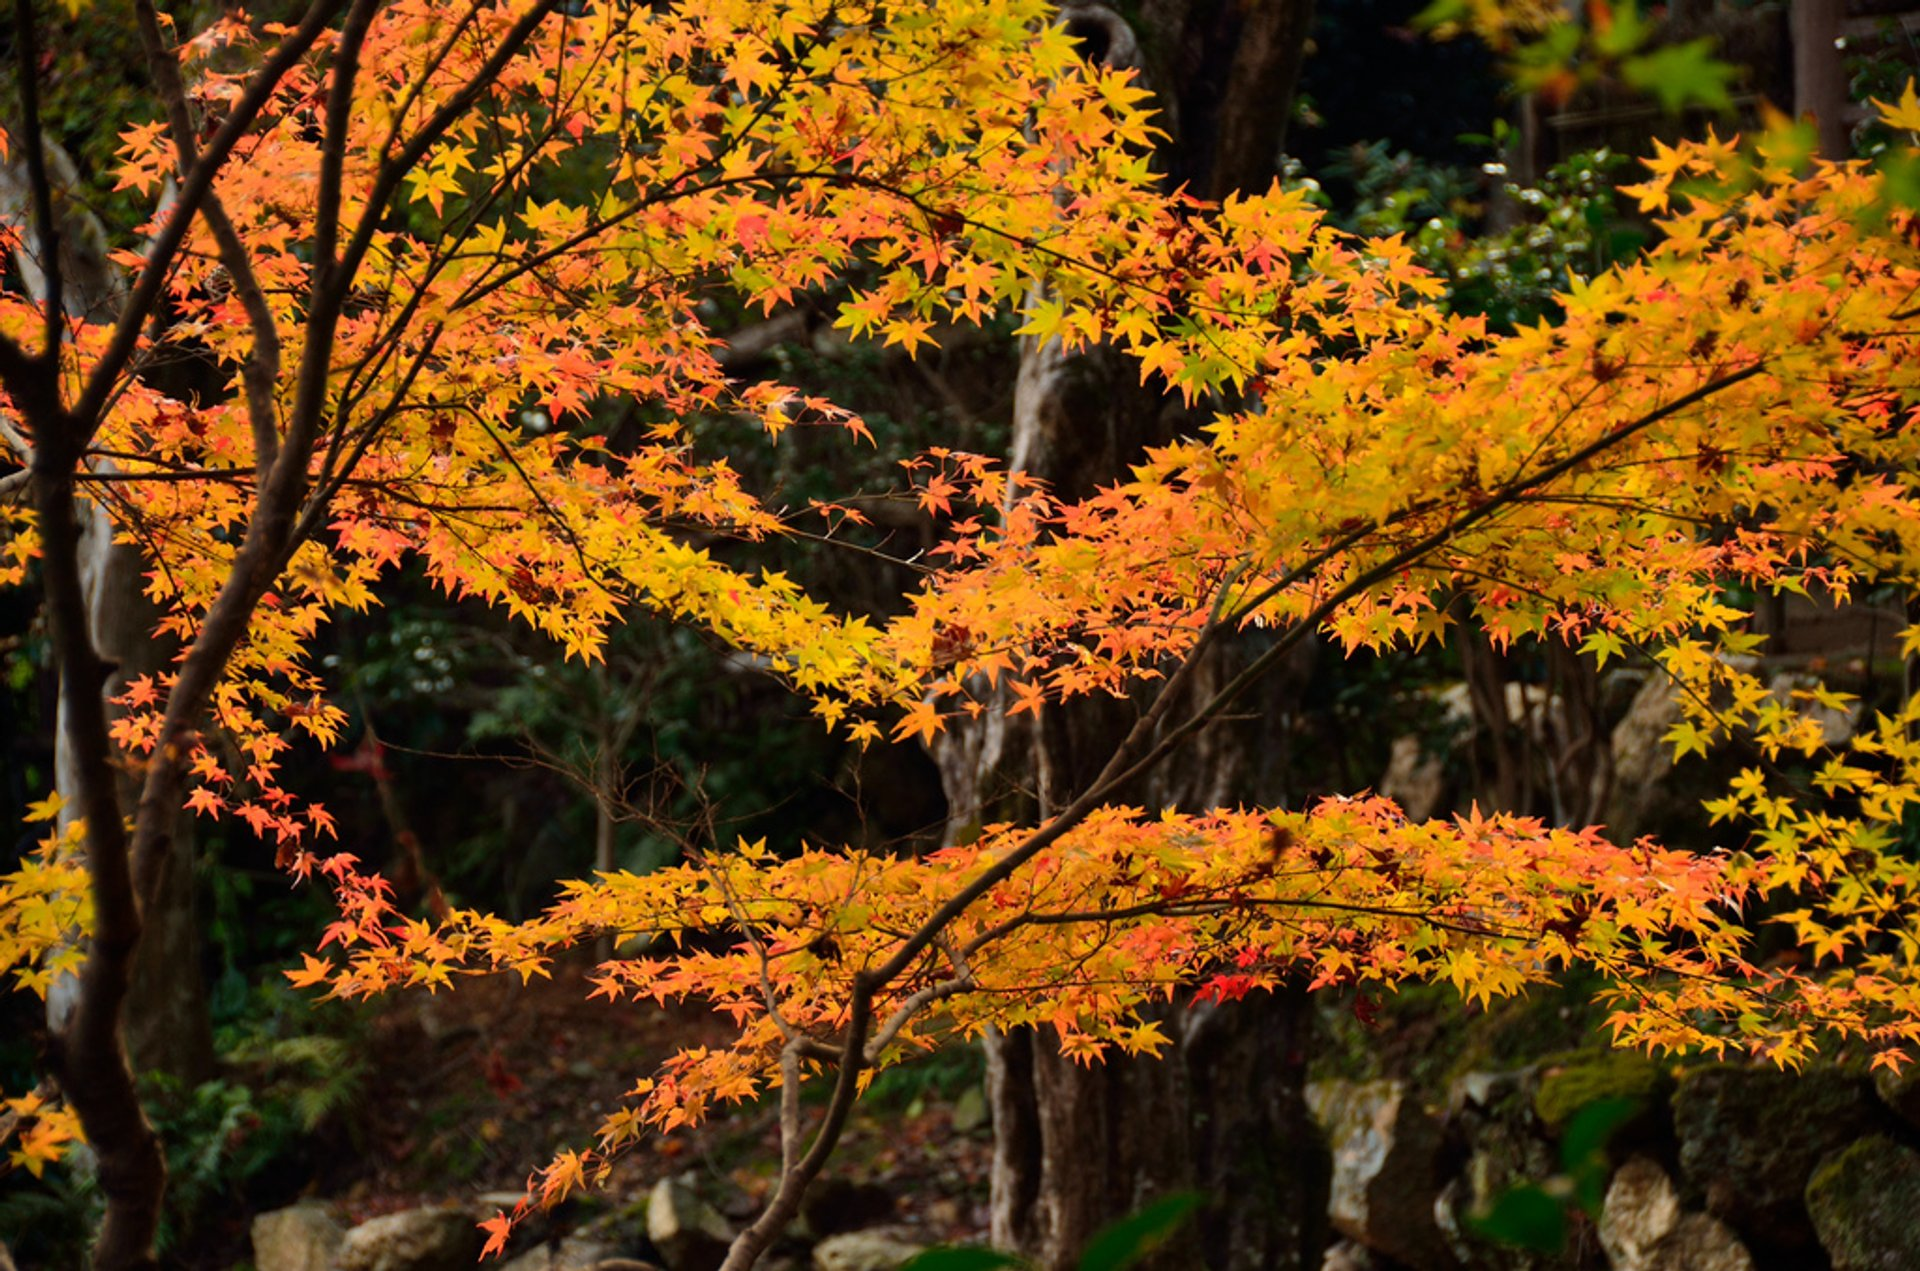 Autumn Foliage (Kōyō) in Kyoto - Best Season 2020